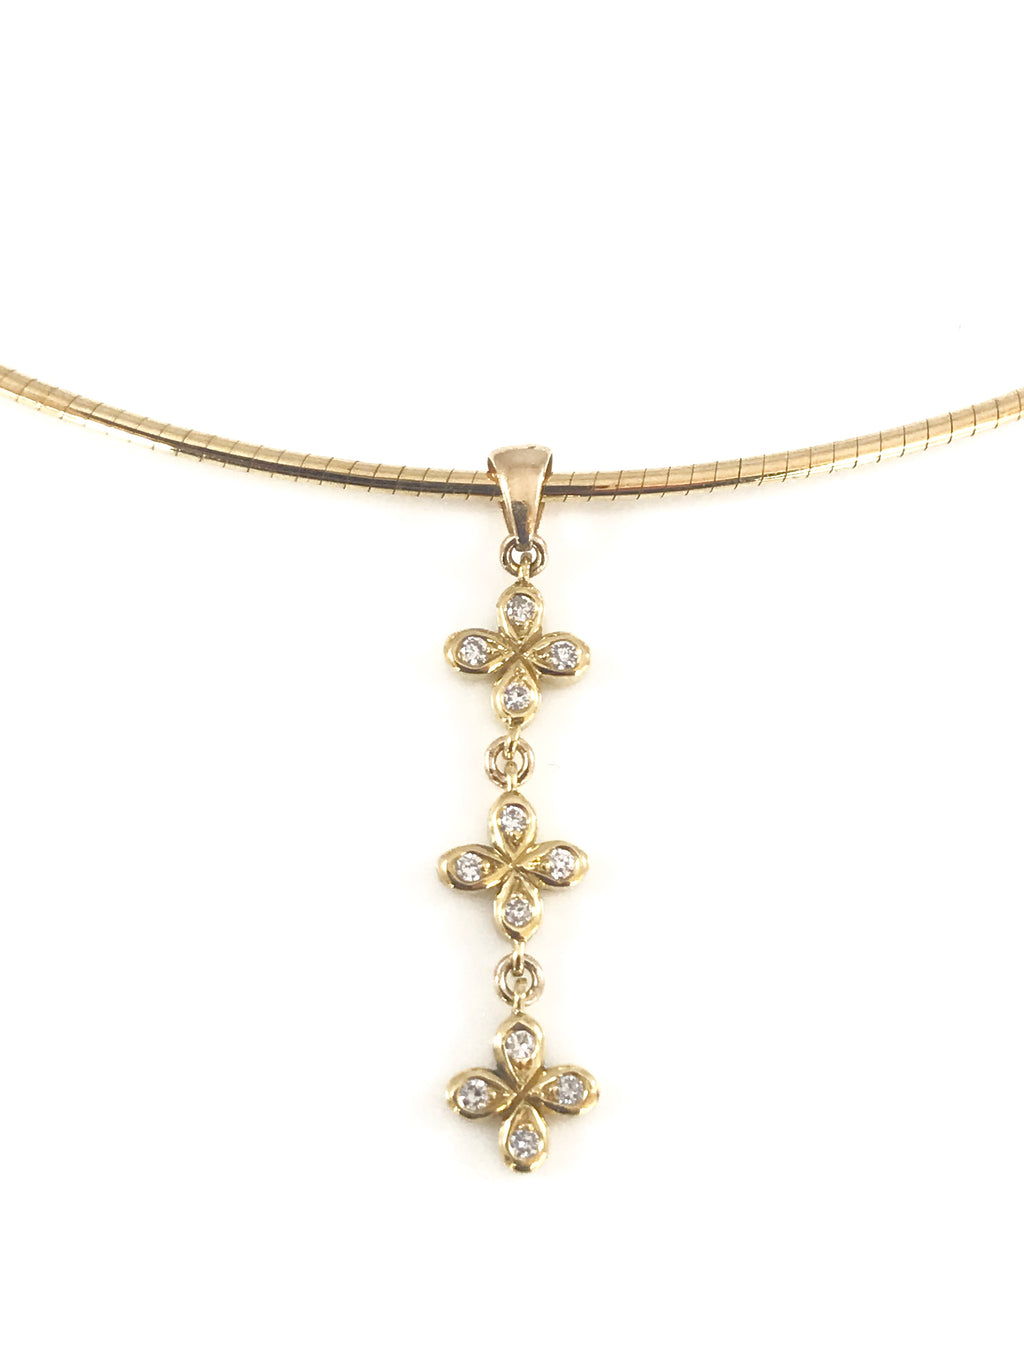 Elegant 18k Diamond Pendant Necklace with Omega Chain